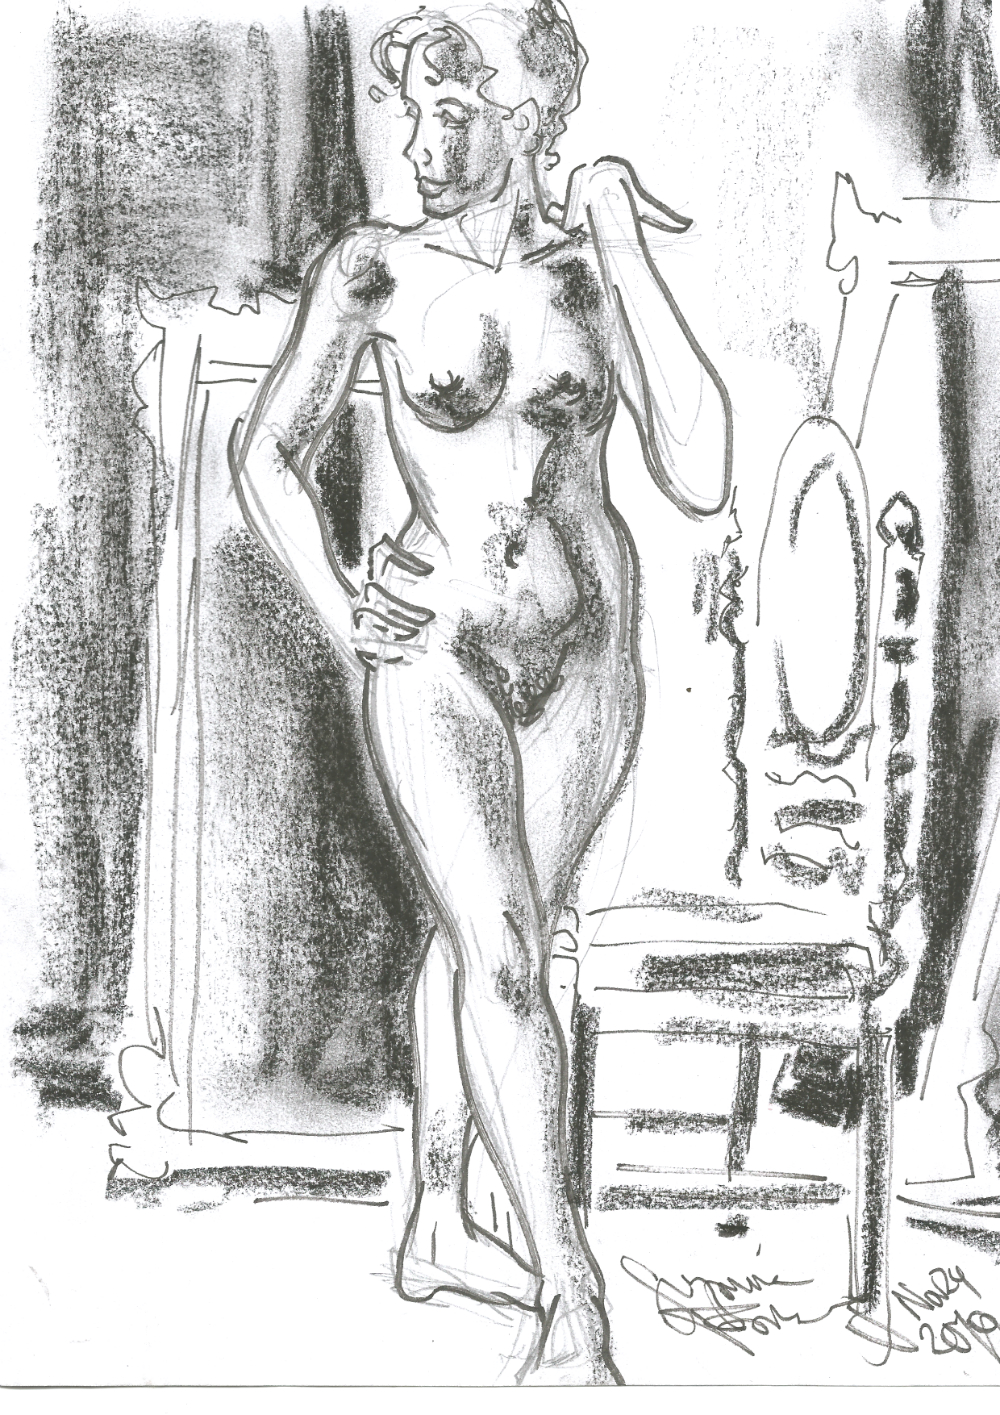 Liliana Velasquez nude at Dr Sketchys Berlin Drink and Draw kunsthaus Nov 24 2019 by Suzanne Forbes